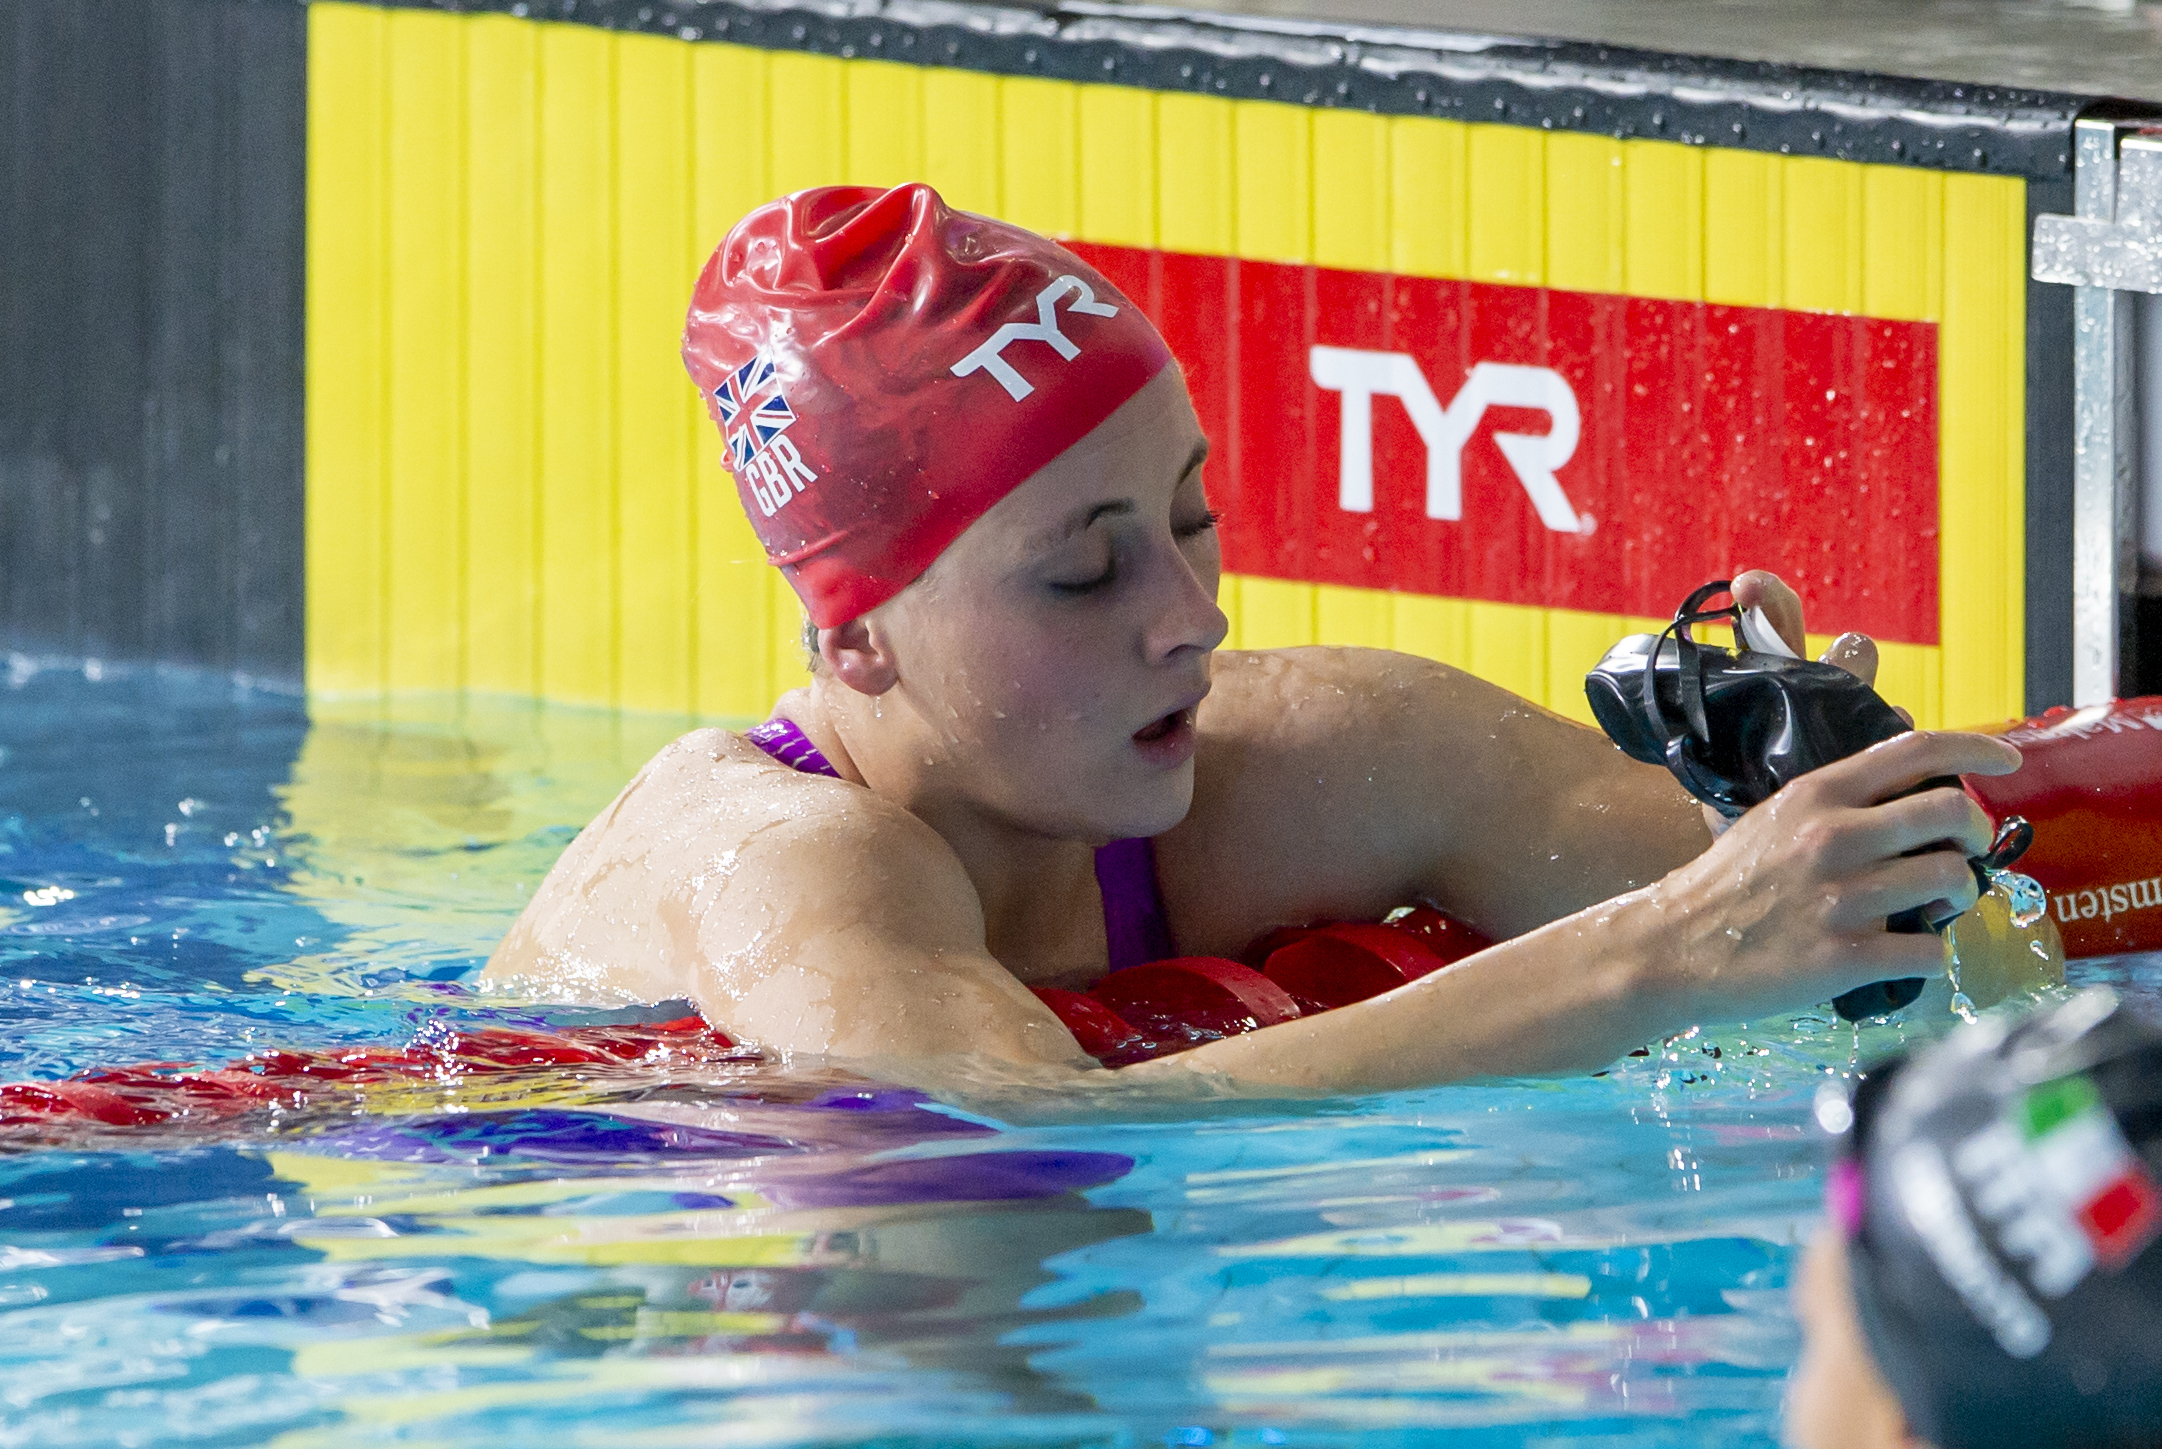 O'Connor looking to replicate 2014 Commonwealth Games Glasgow glory